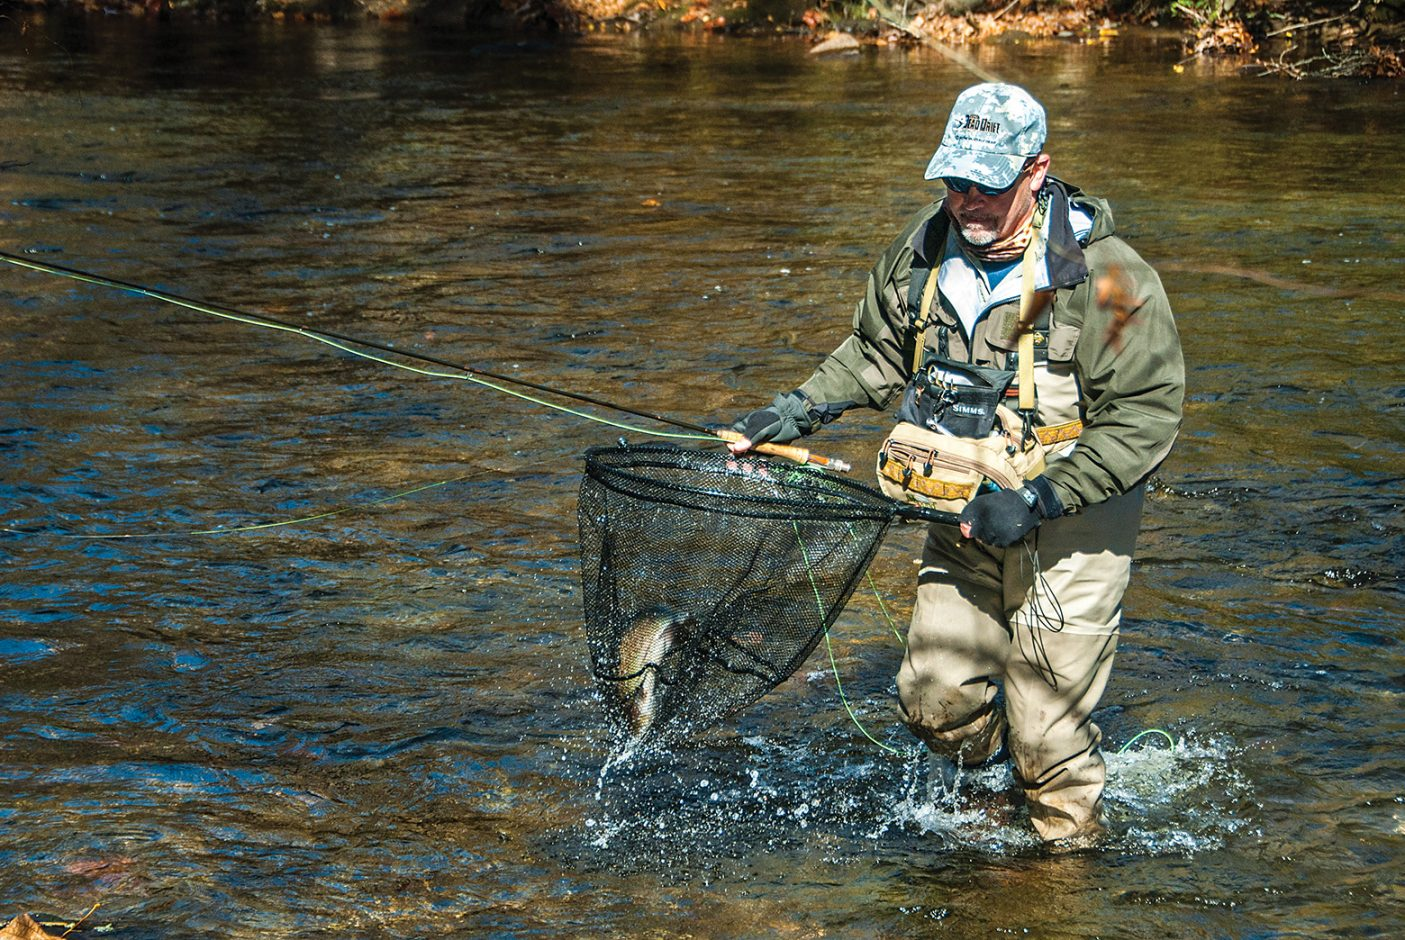 Man in river with fly rod and trout in net